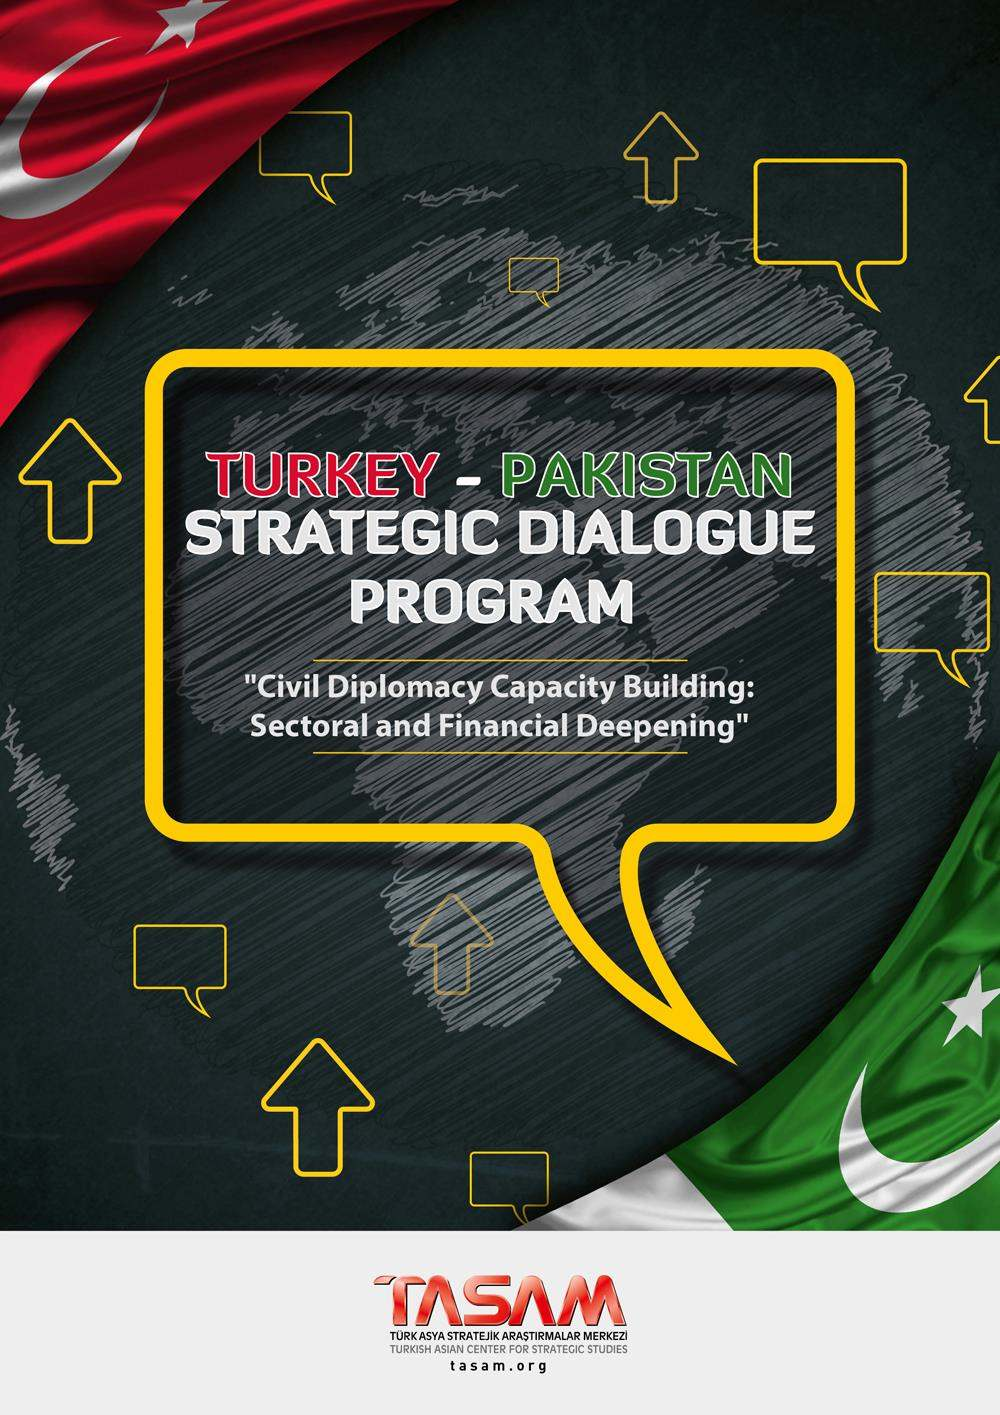 Turkey - Pakistan Strategic Dialogue Program